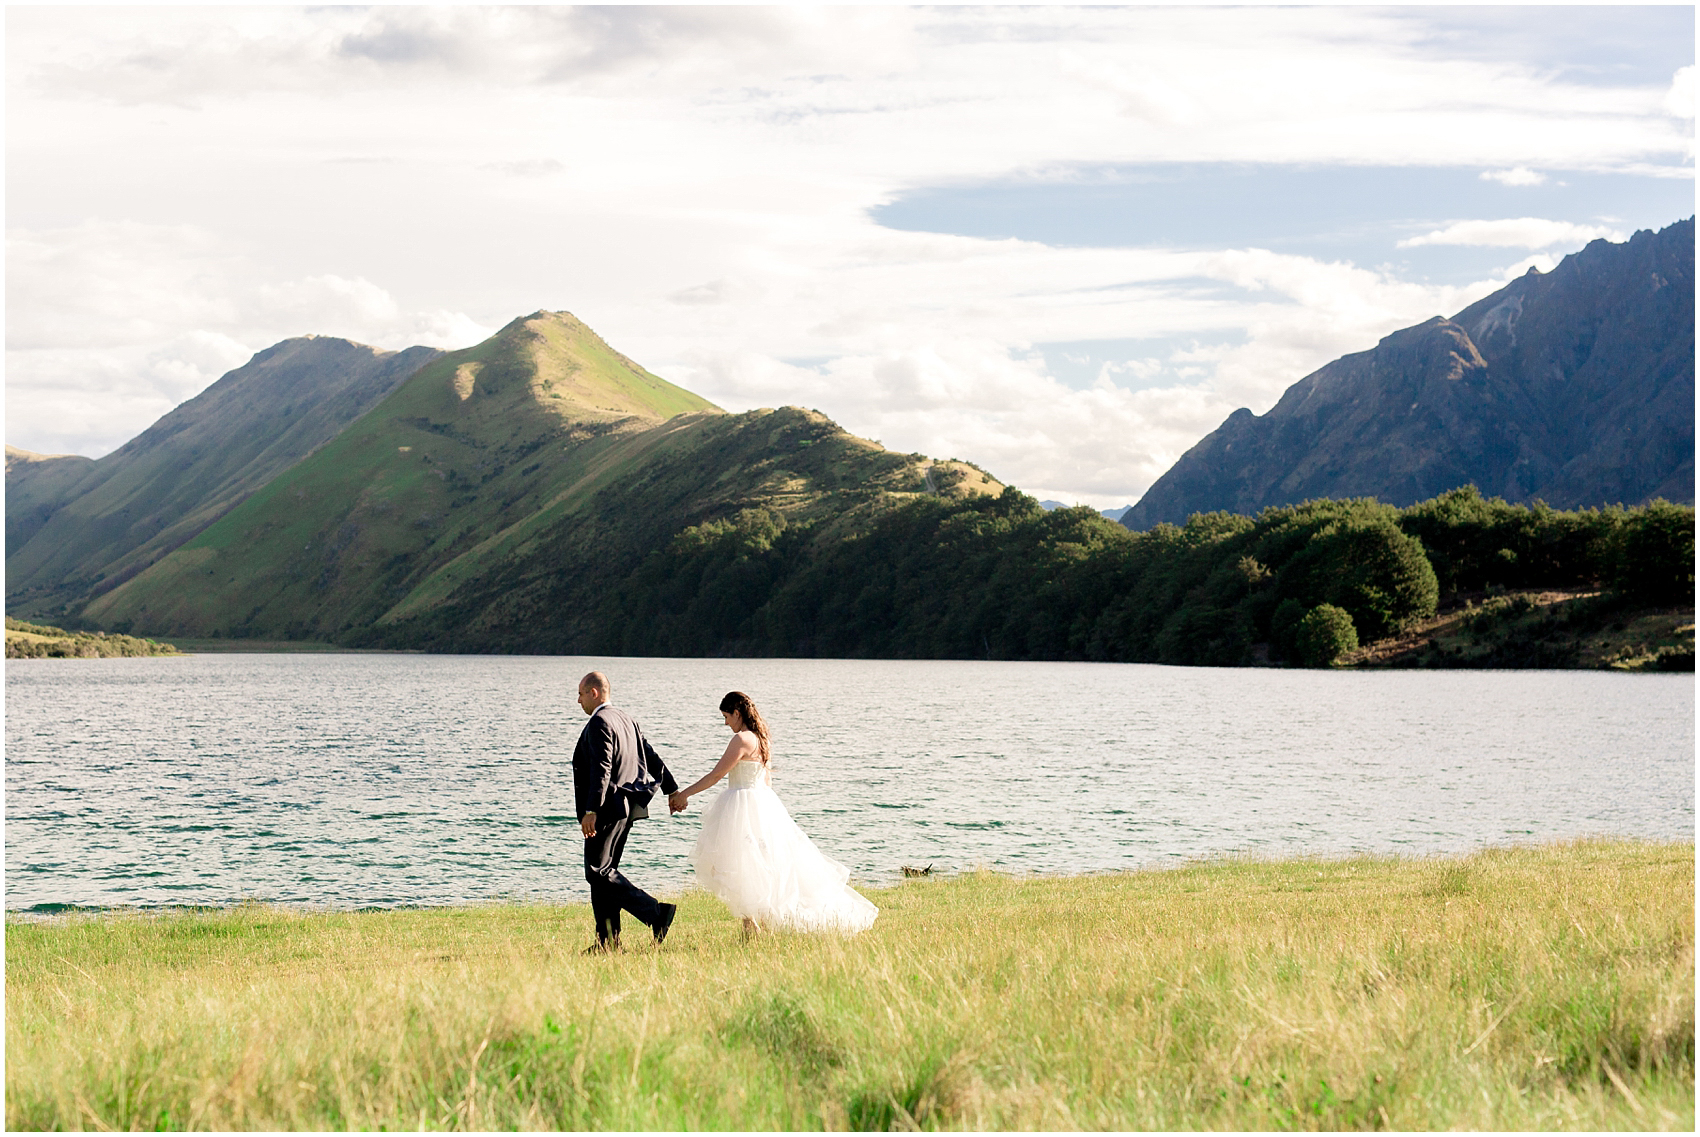 Queenstown New Zealand Wedding Photographer Bruna Fabricio Smetona Photo-0054.jpg